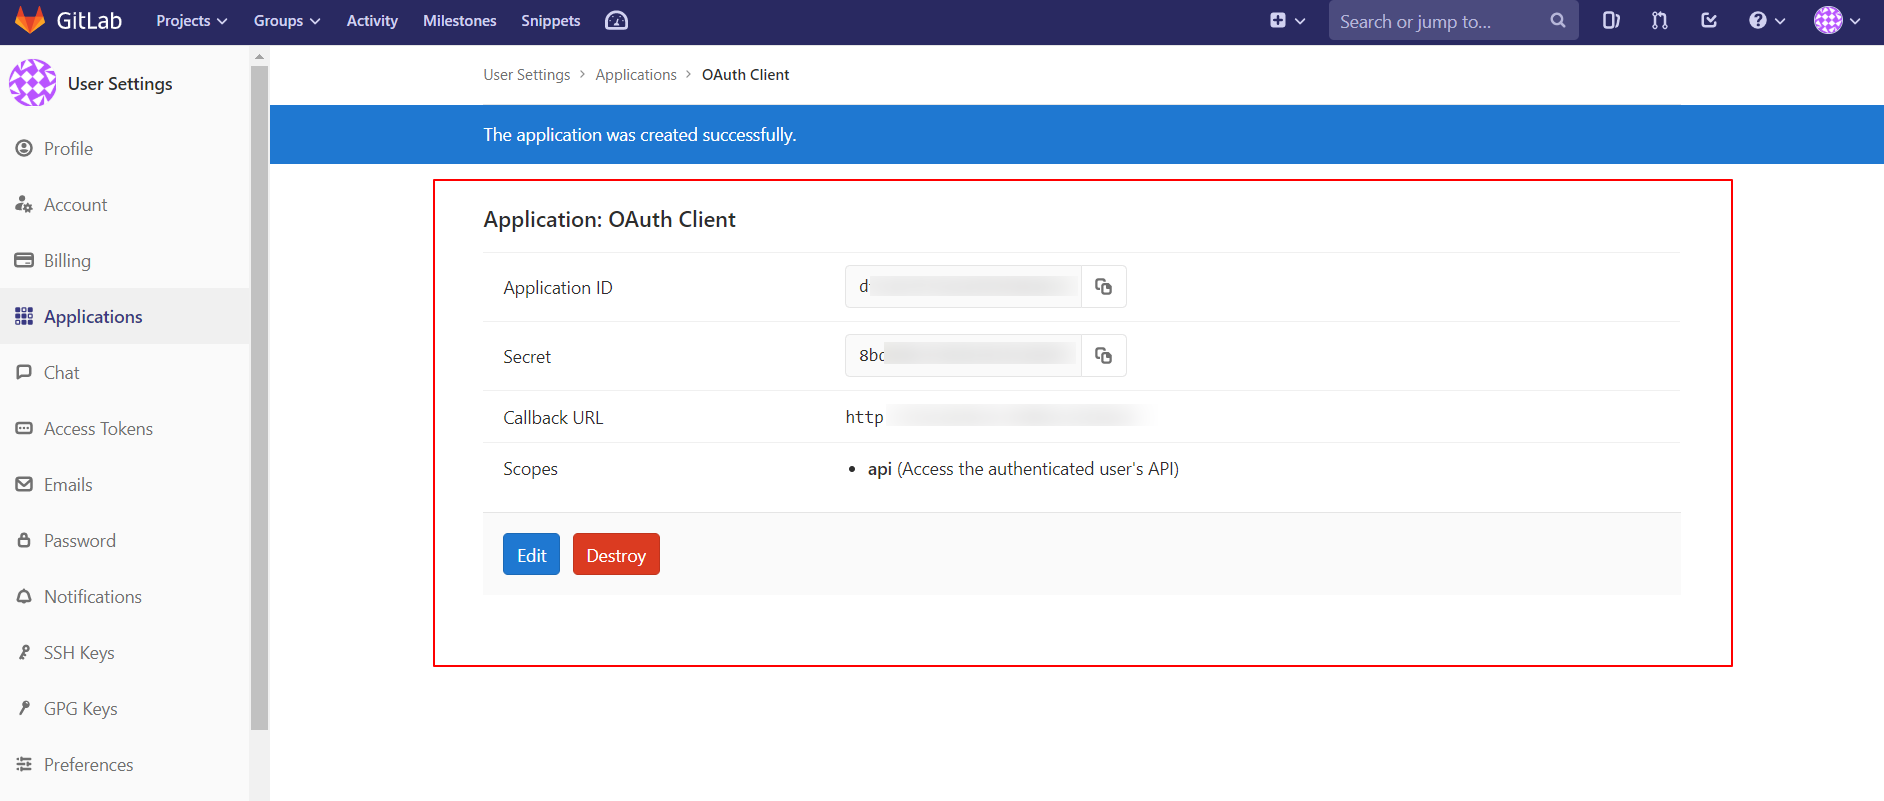 OAuth/OpenID/OIDC Single Sign On (SSO), GitLab SSO Login Get Client ID